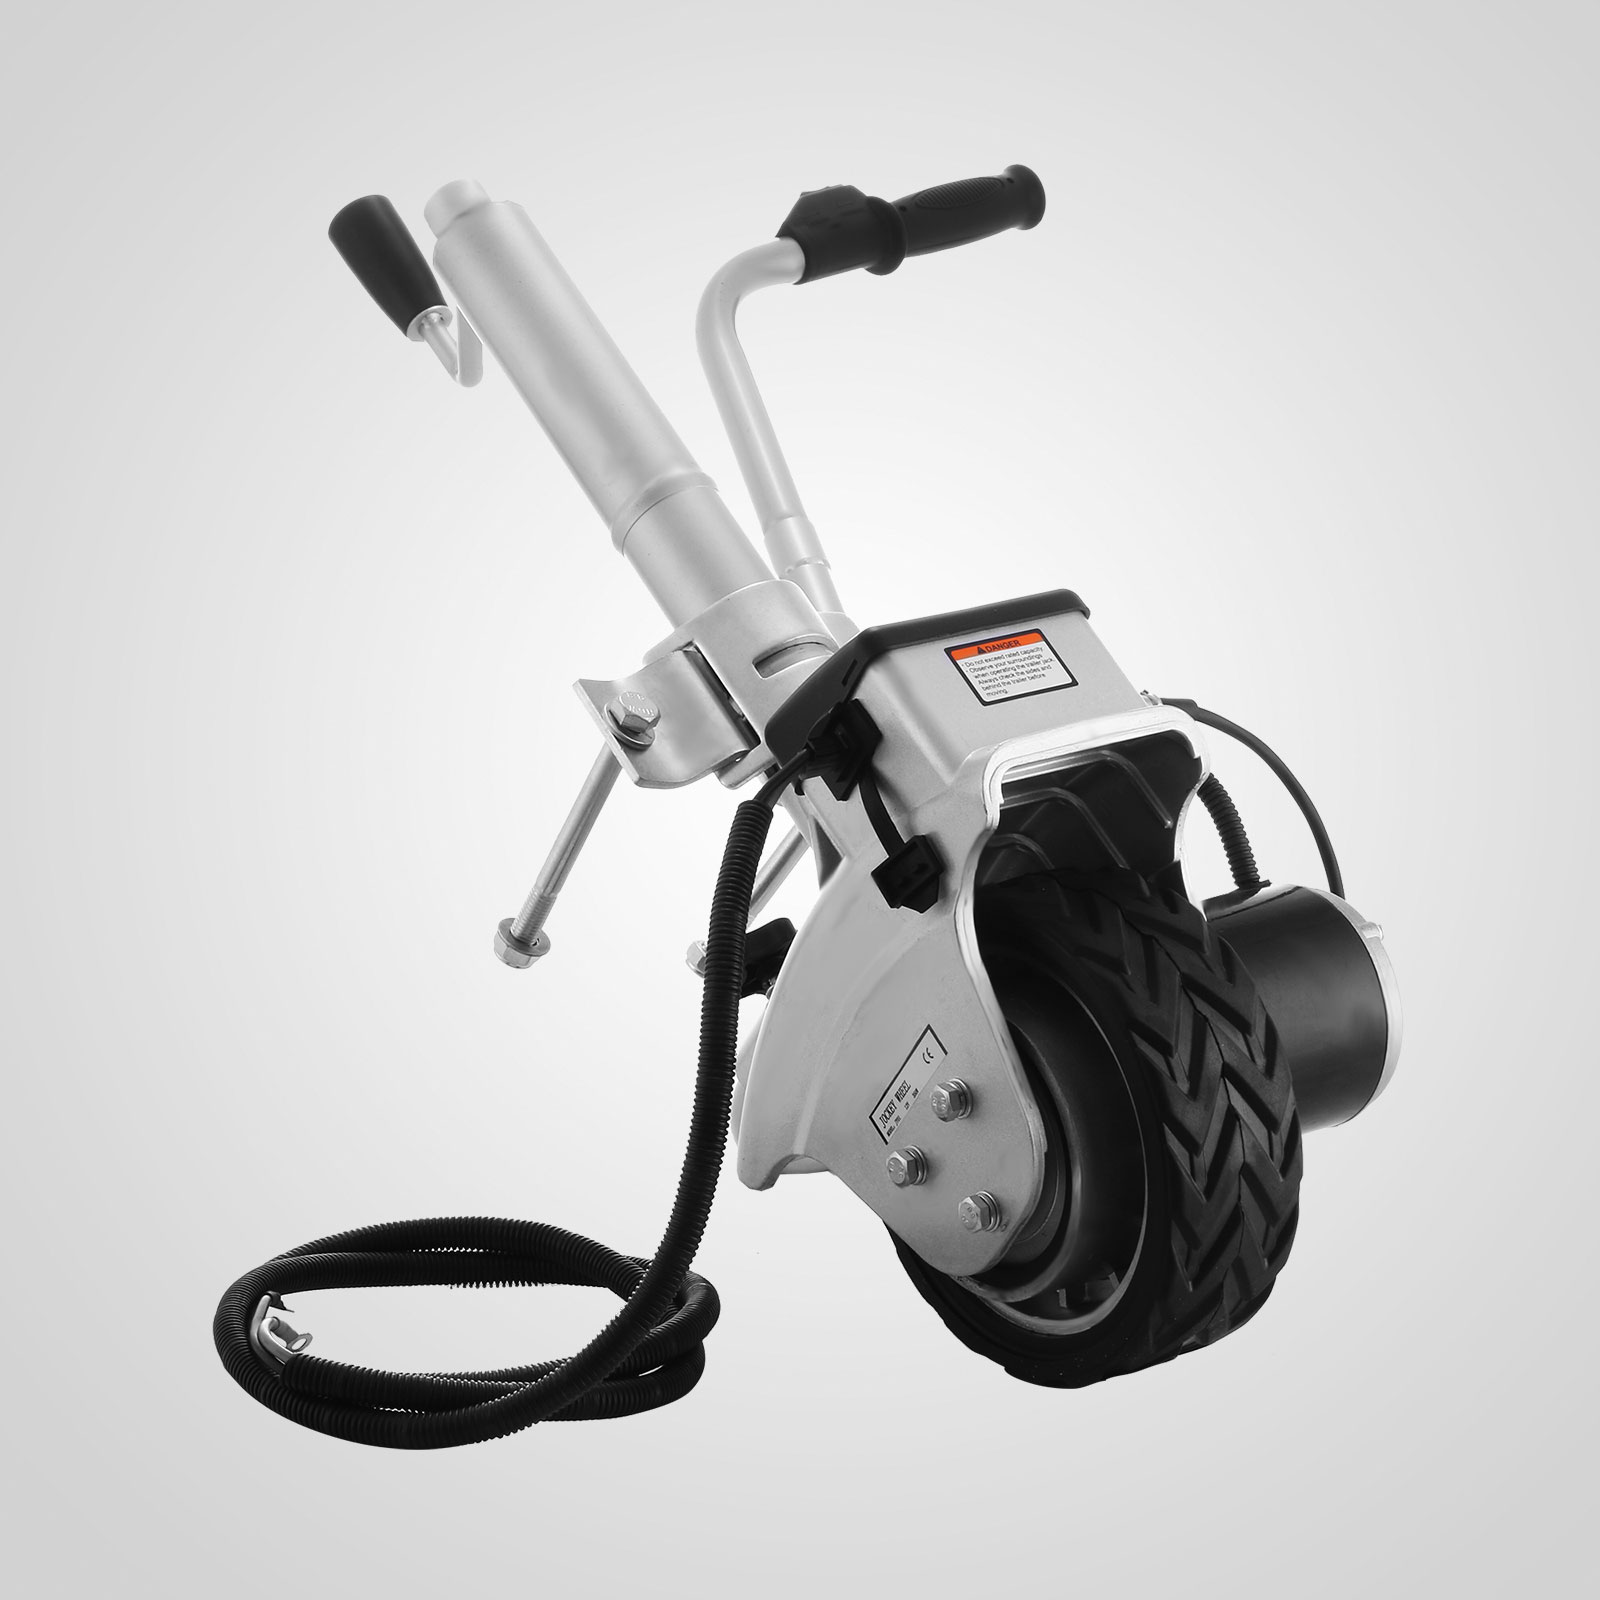 Motorized Trailer Jack Wheel 12v Mover Electric Power